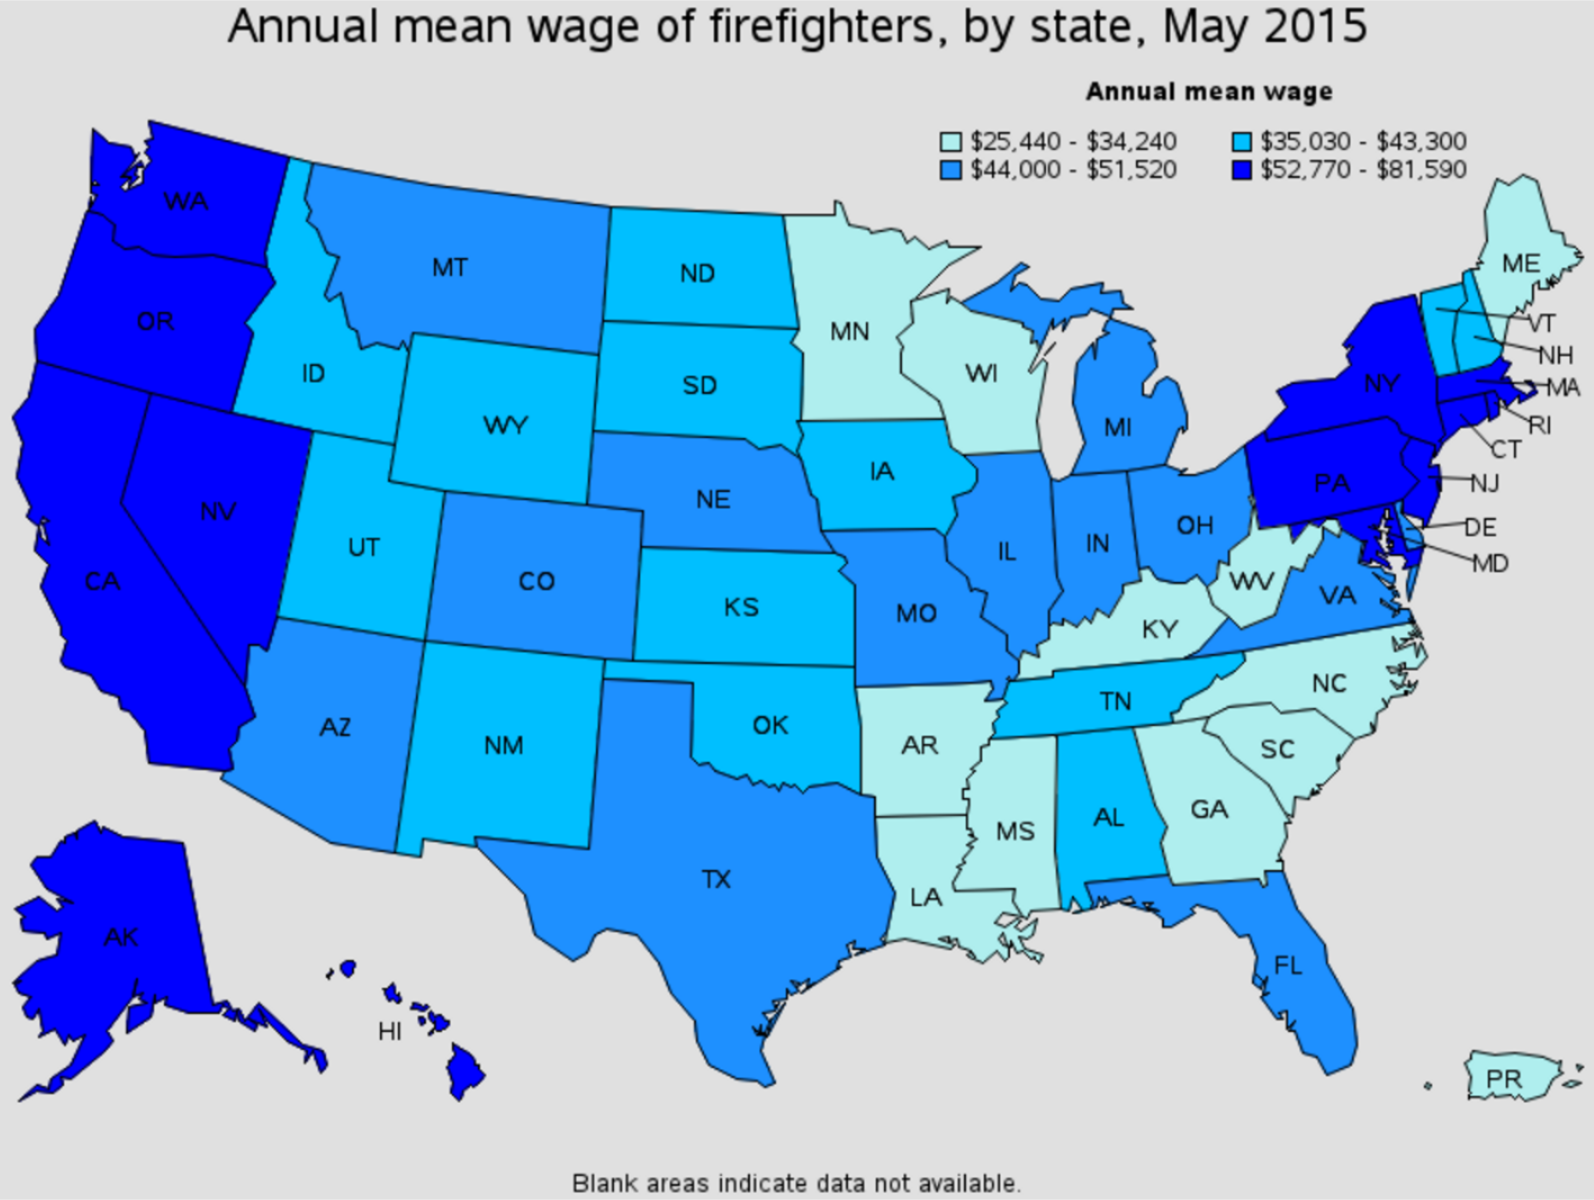 firefighter average salary by state Wirtz Virginia